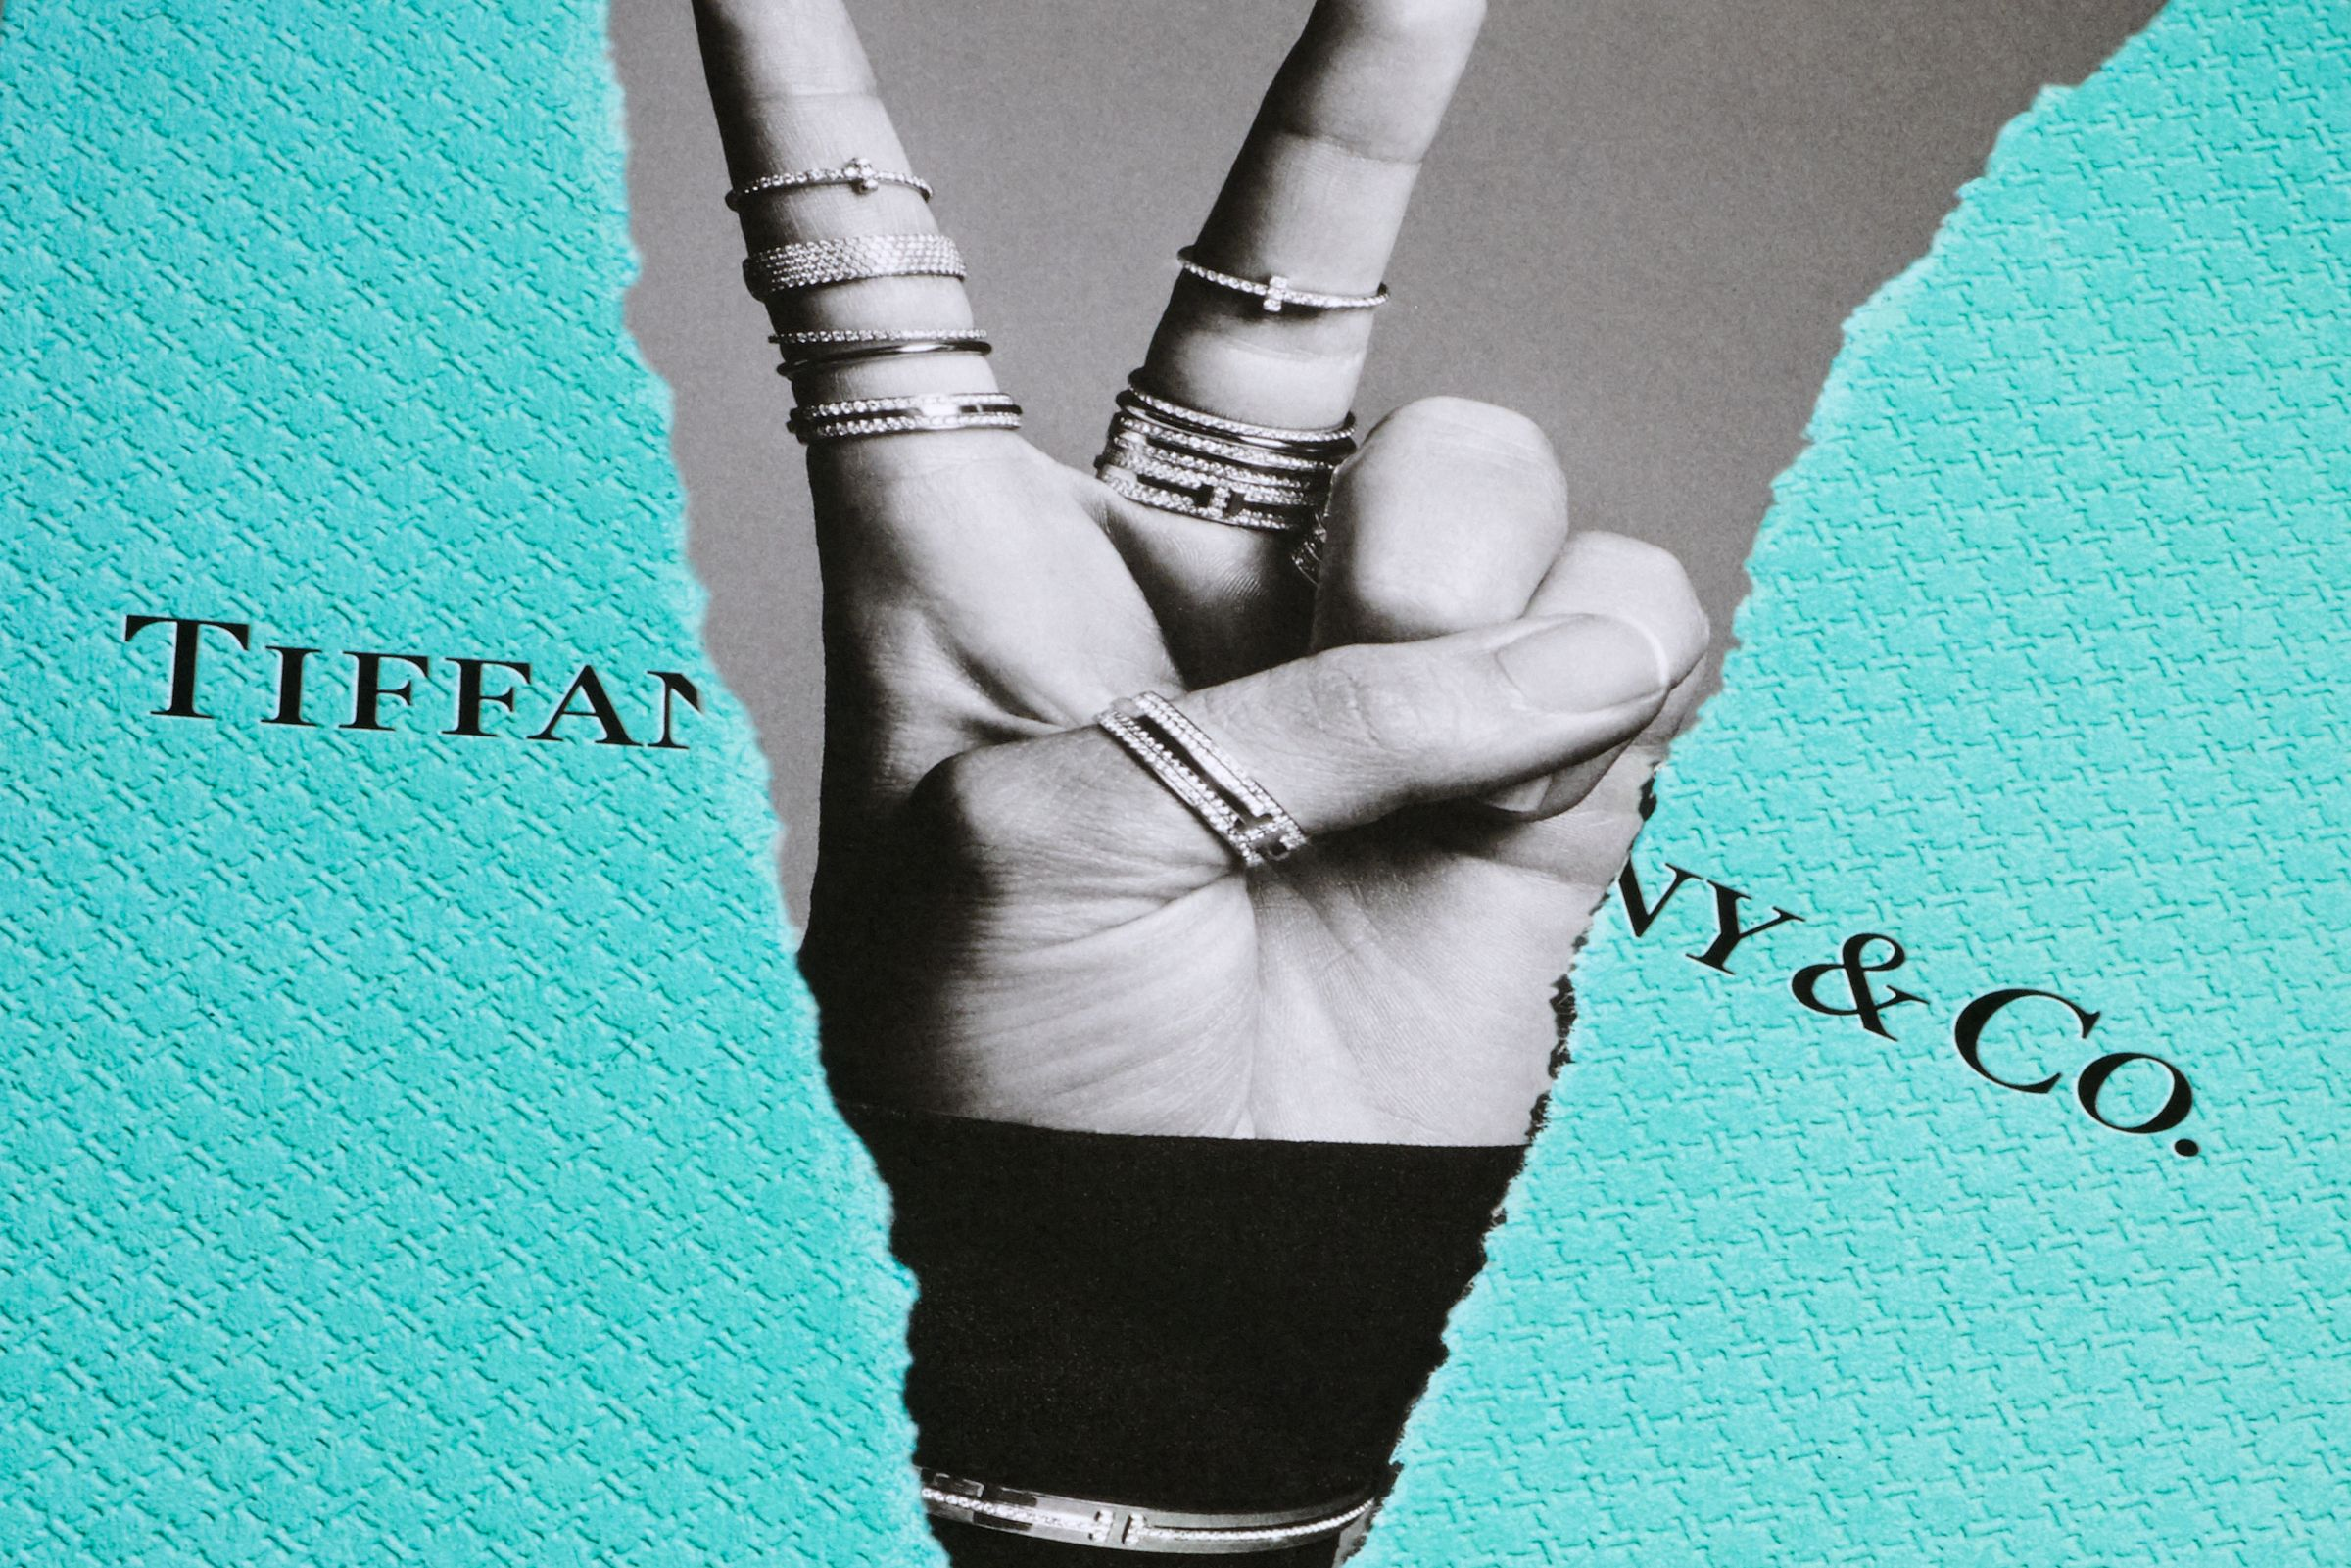 This is Tiffany magazine cover closeup